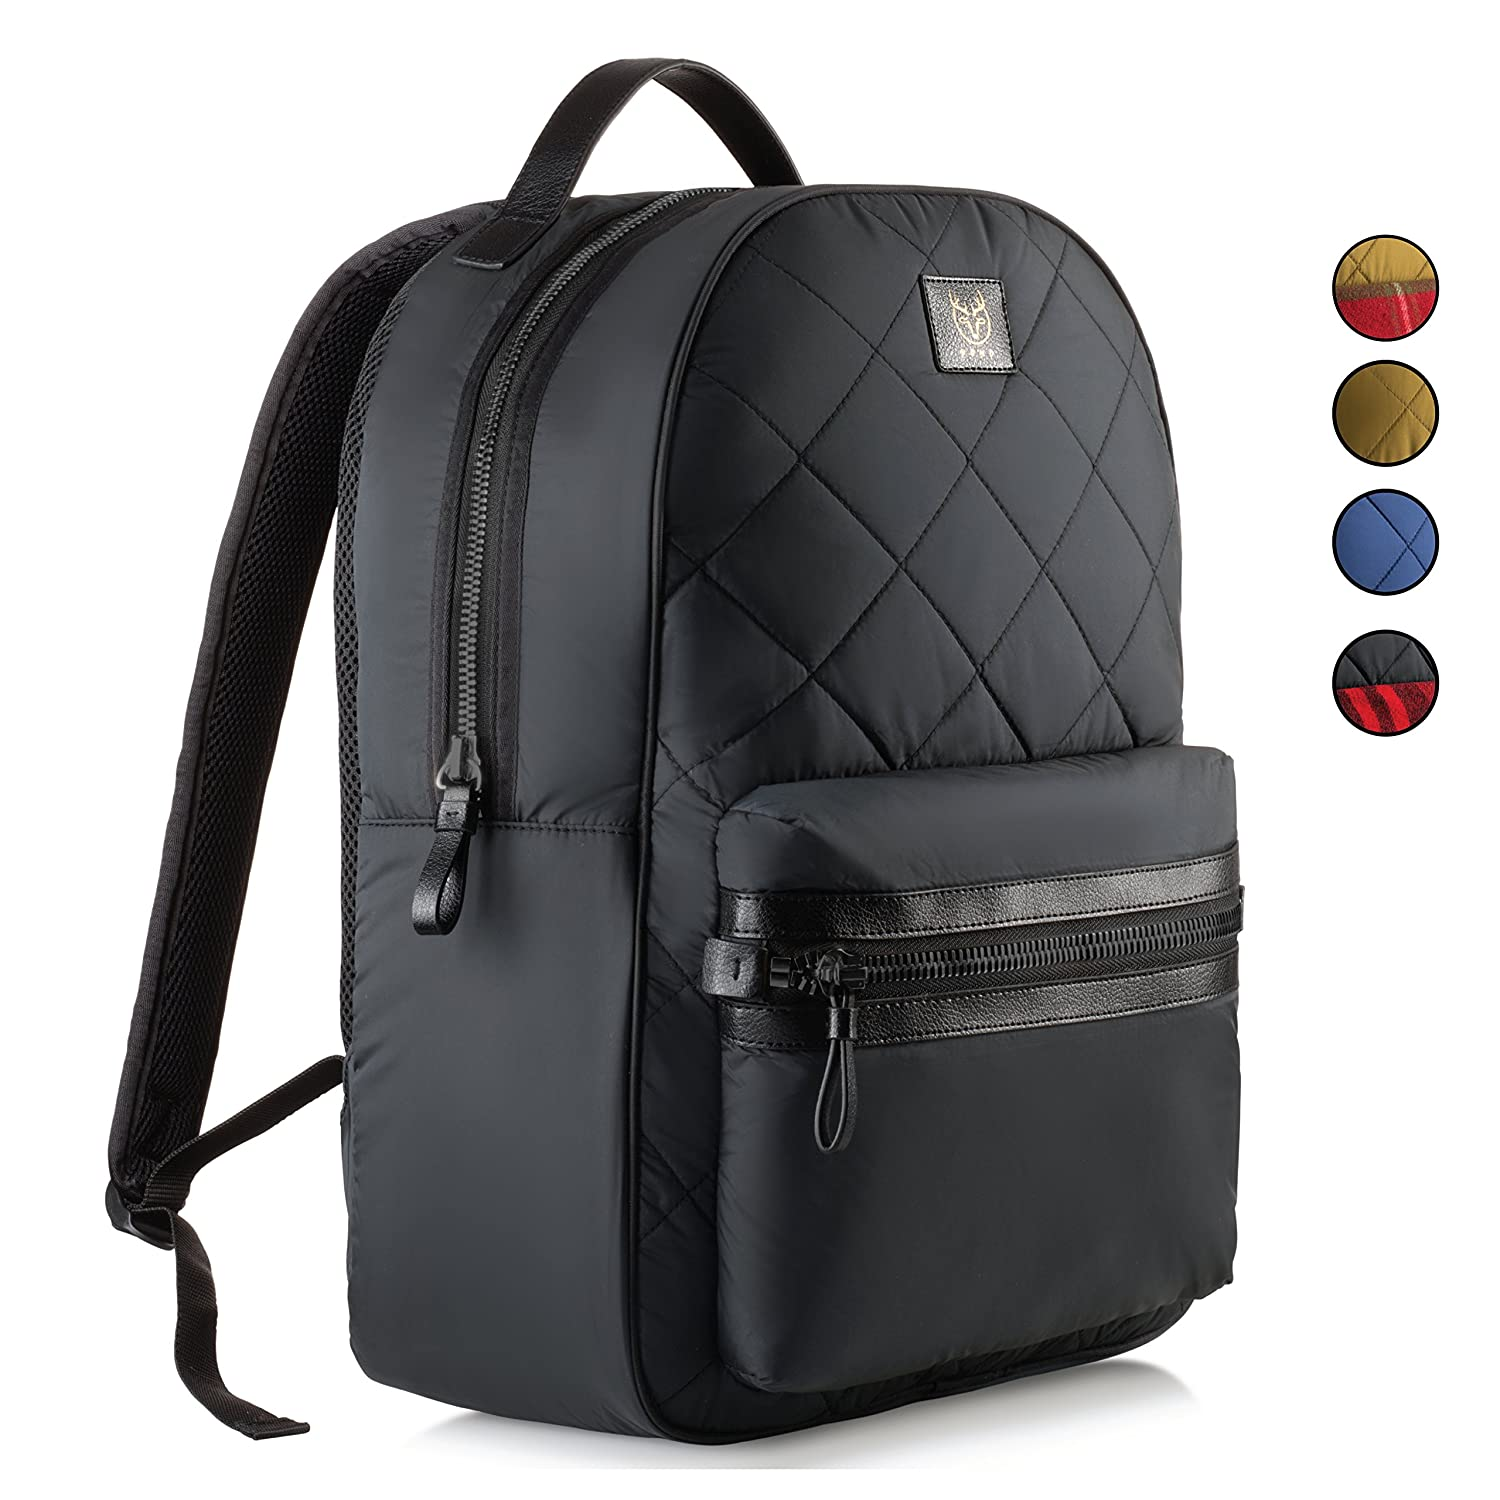 6d0b992877f4 Preppy Backpacks For College Guys- Fenix Toulouse Handball